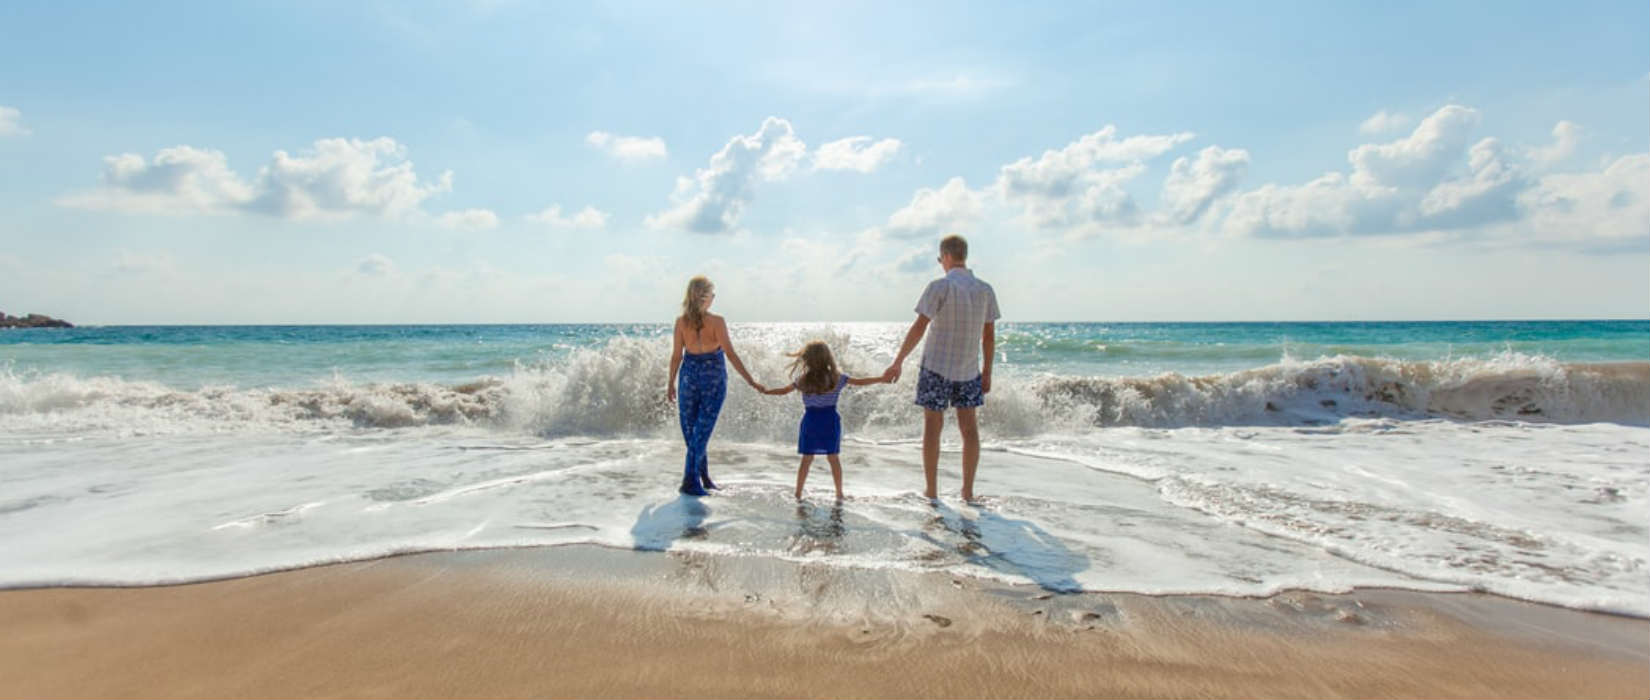 Different families have different dreams of what makes up a memorable family holiday. Some may want to treat their loved ones, while others may want to spend a day building sandcastles at the beach. Whatever the reason may be, figuring out how to hold that perfect family holiday can be more difficult than it seems.